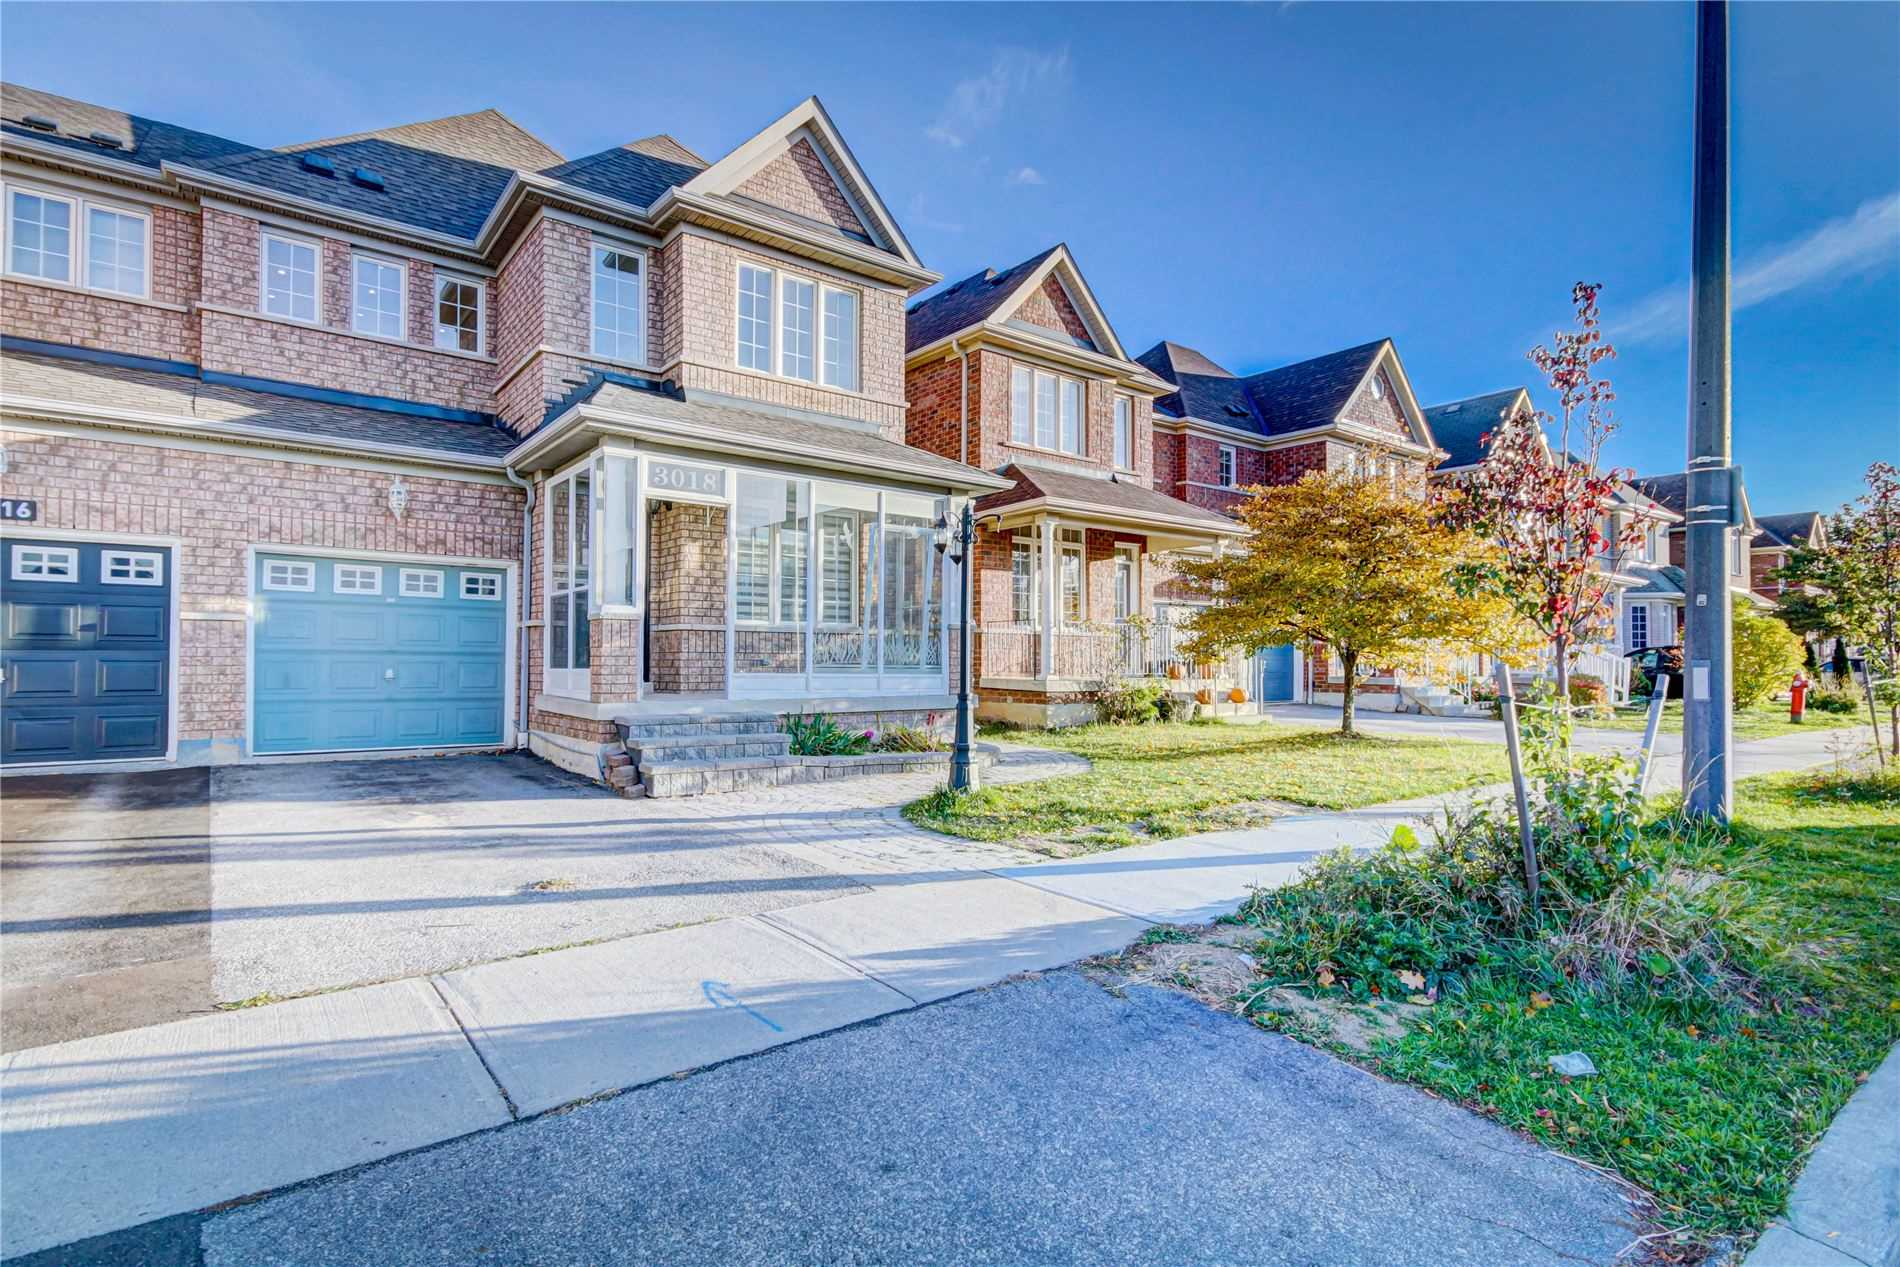 pictures of 3018 Workman-Basement Dr, Mississauga L5M6J9